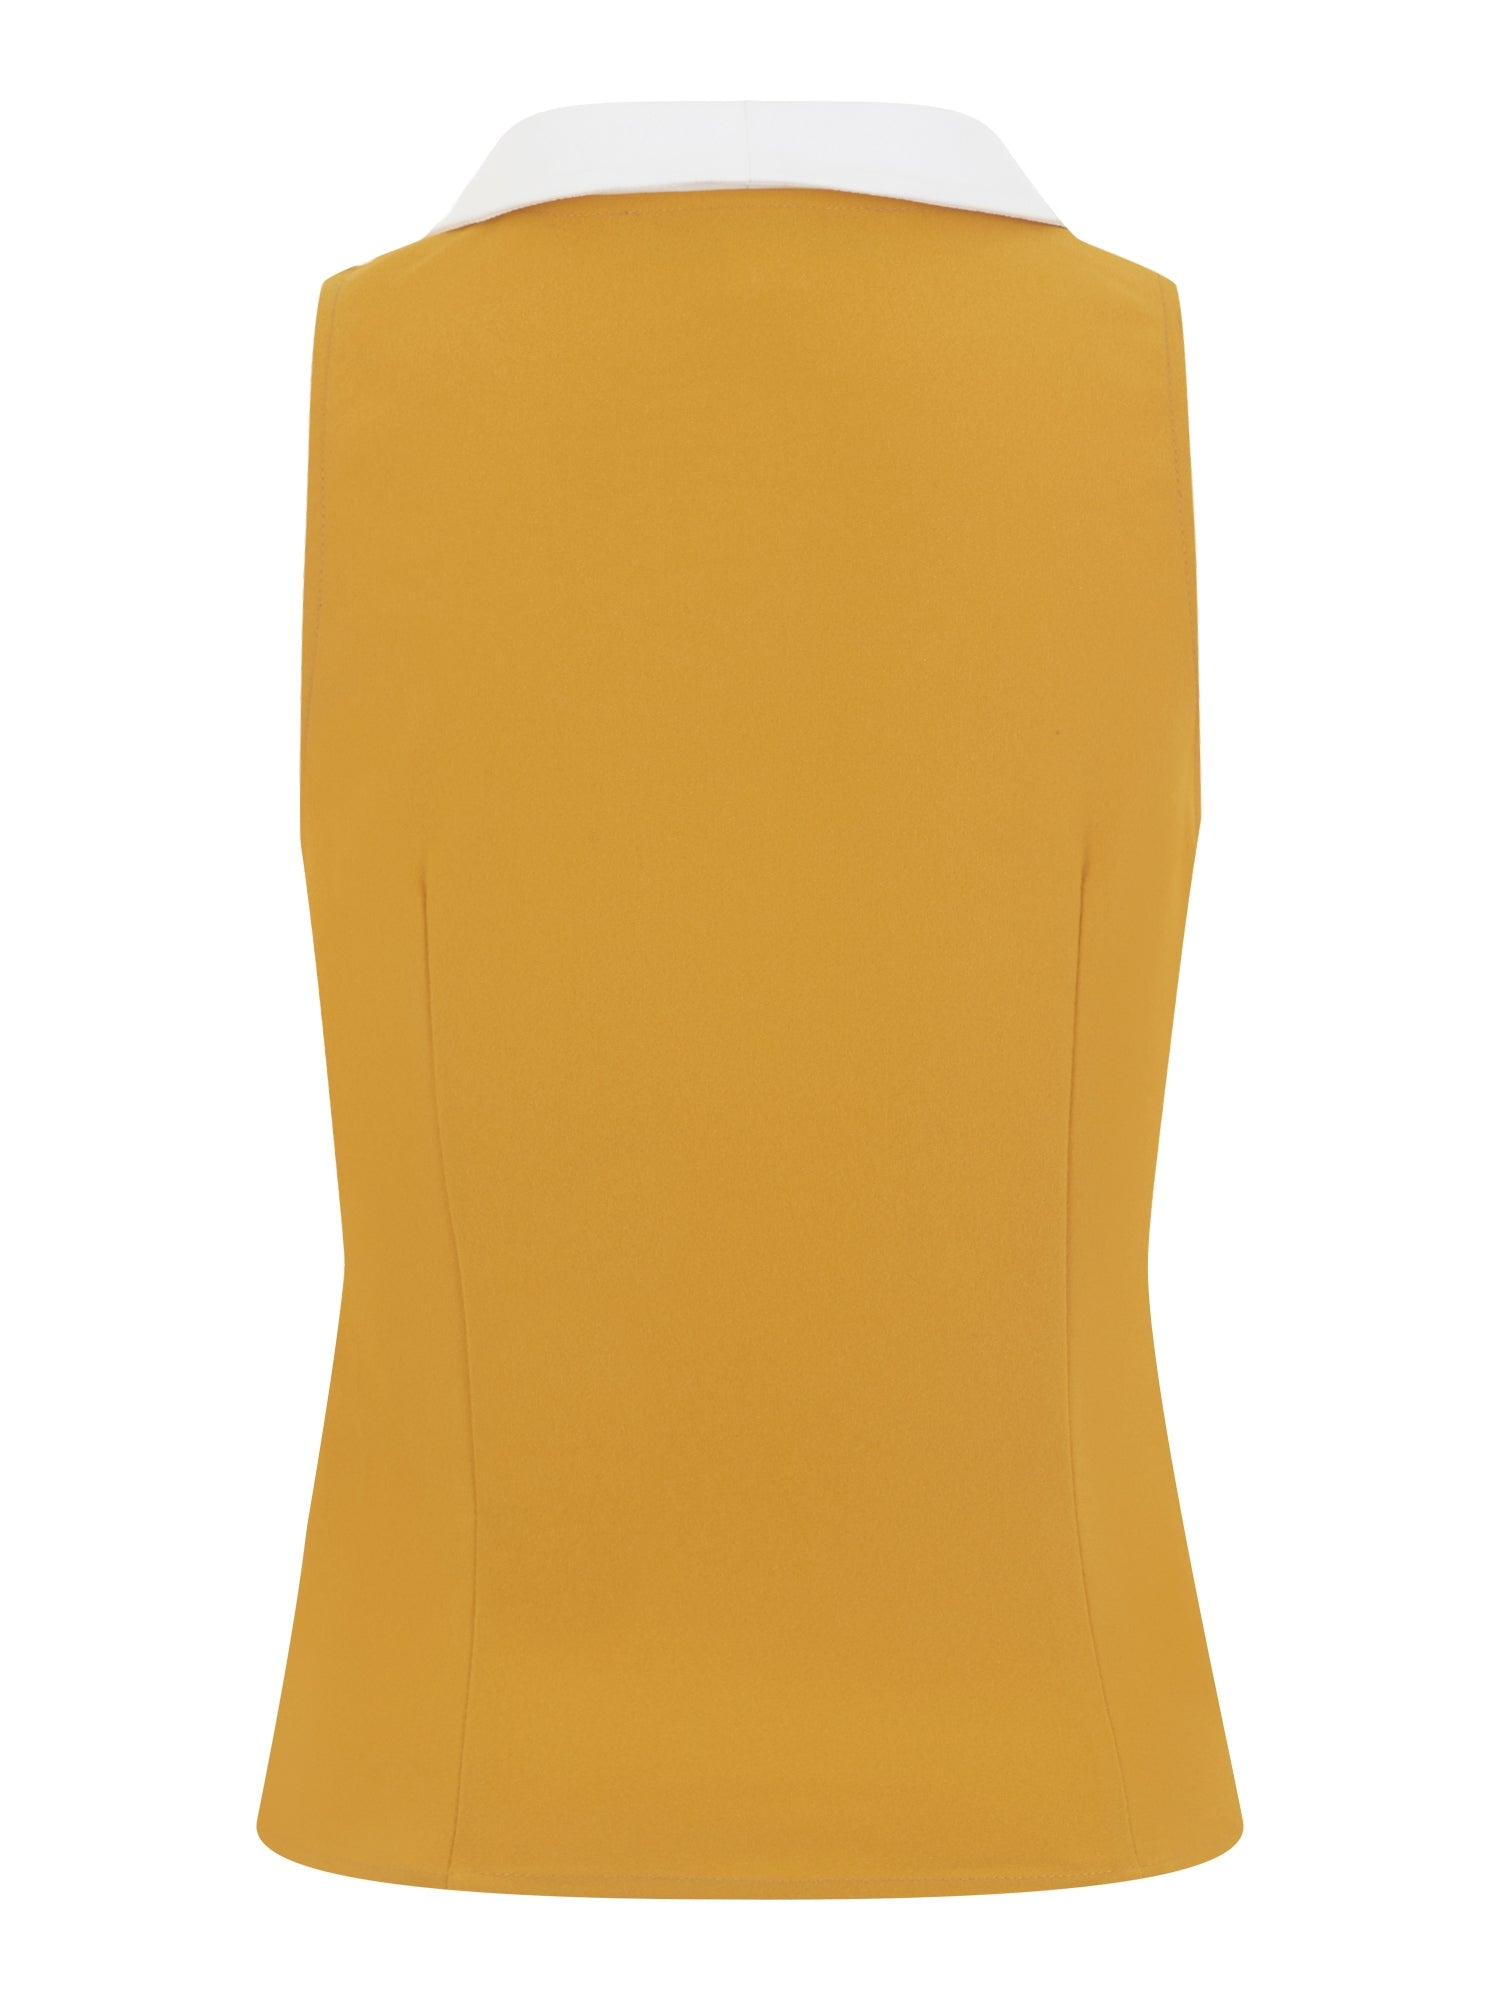 Lowri Plain Bow Top ~ Bright And Beautiful